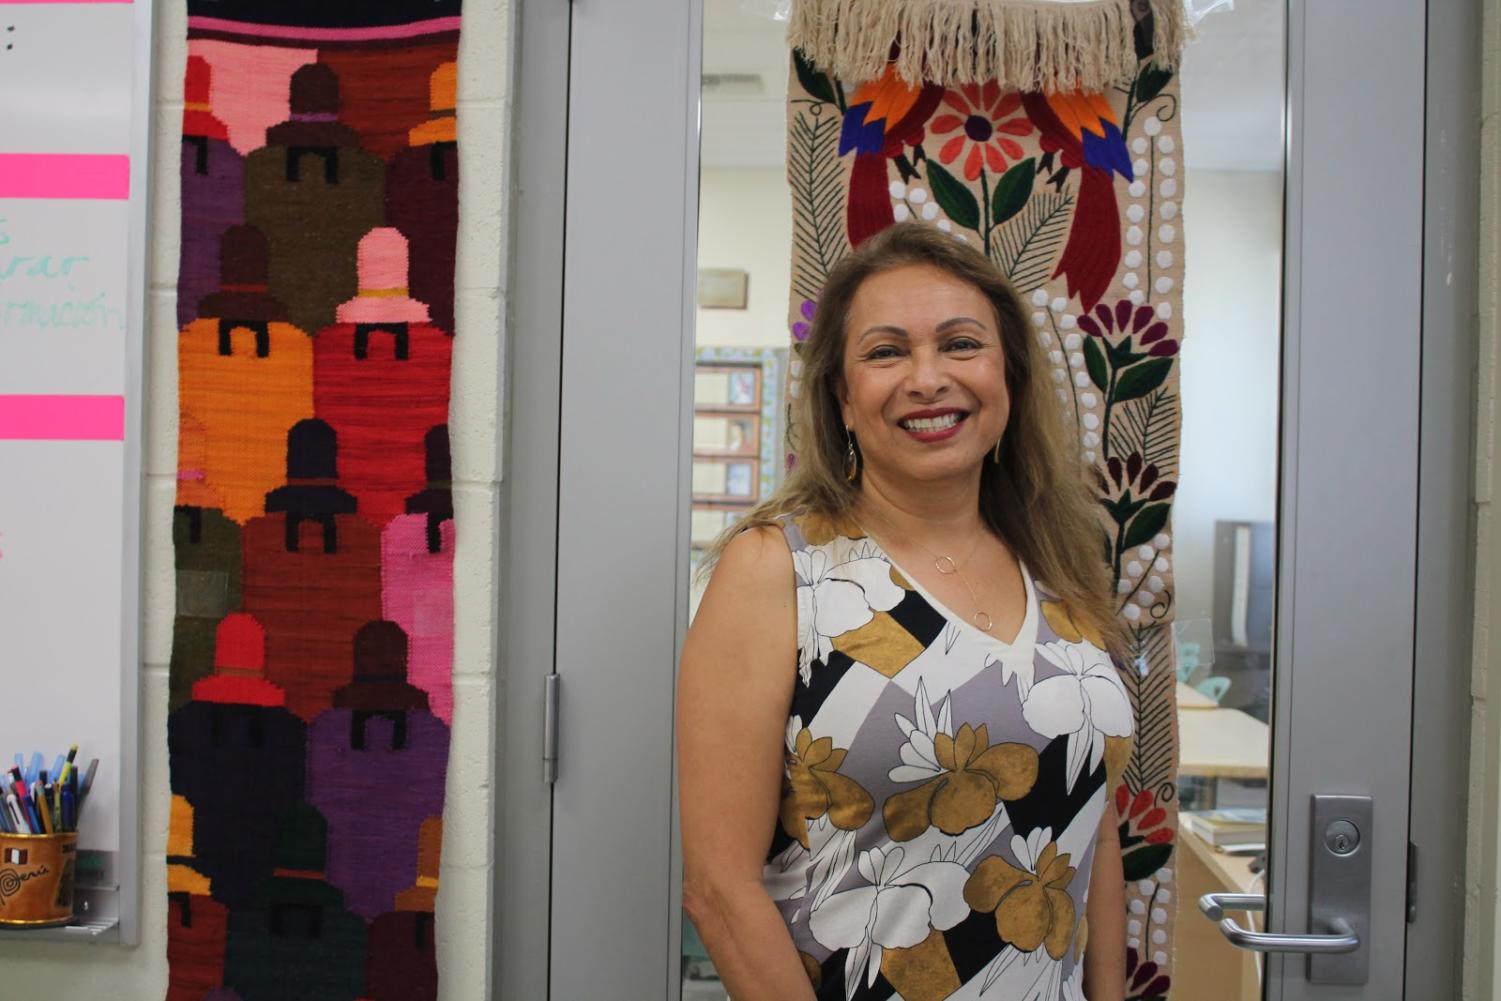 Spanish teacher Elvia Morales standing besides her Mexican mosaic tapestries.